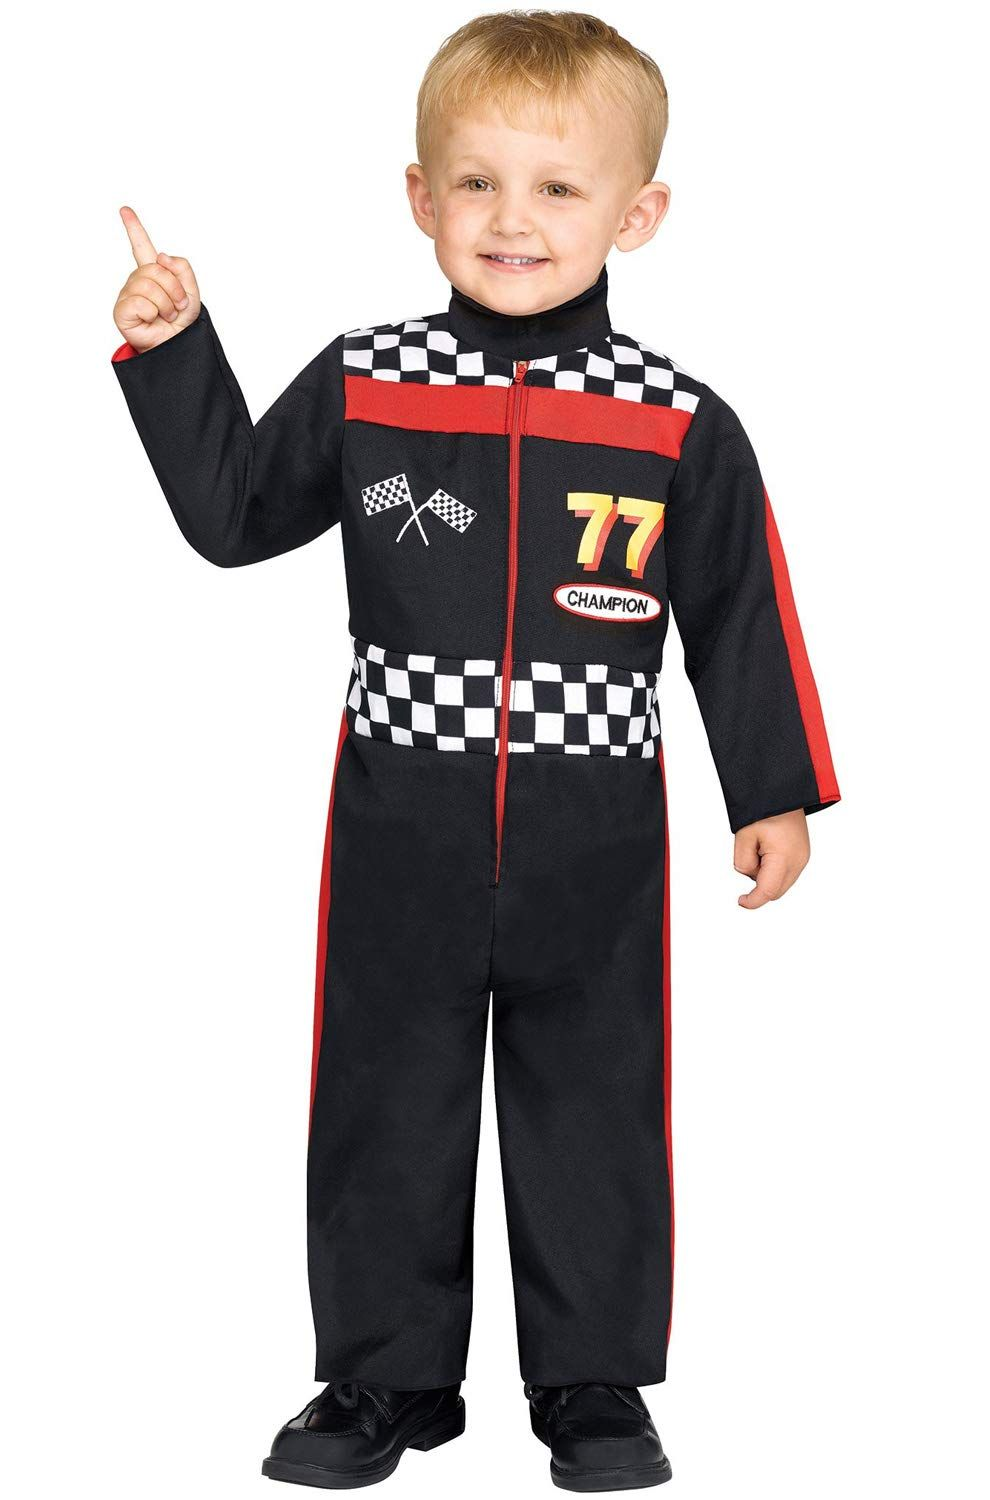 Fun World Boys Race Car Driver Toddler Costume Multicolor Small Remain To The Race Car Driver Halloween Costume Toddler Costumes Toddler Halloween Costumes